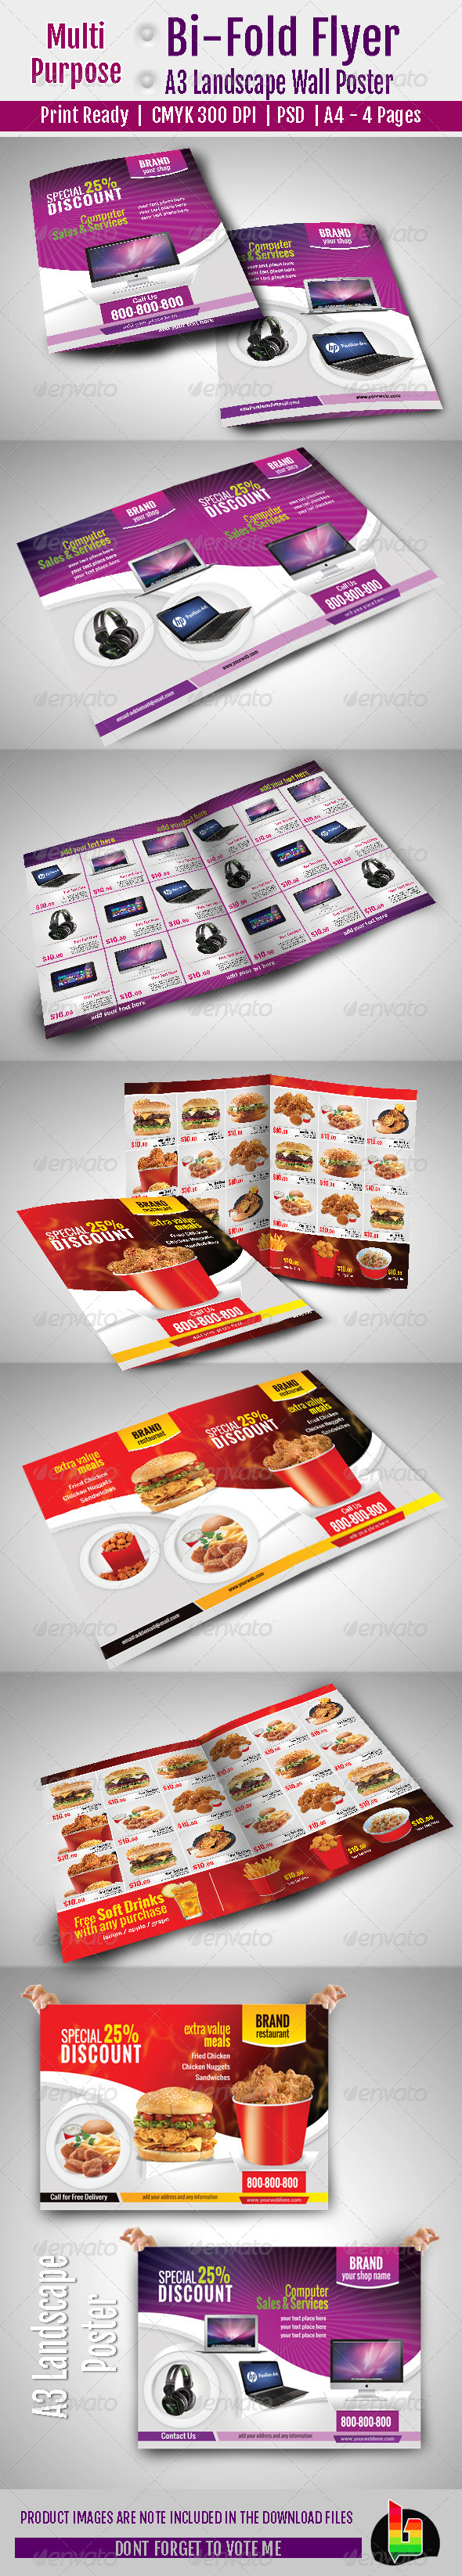 Multi Purpose Bi-Fold Flyer & A3 Poster - Flyers Print Templates